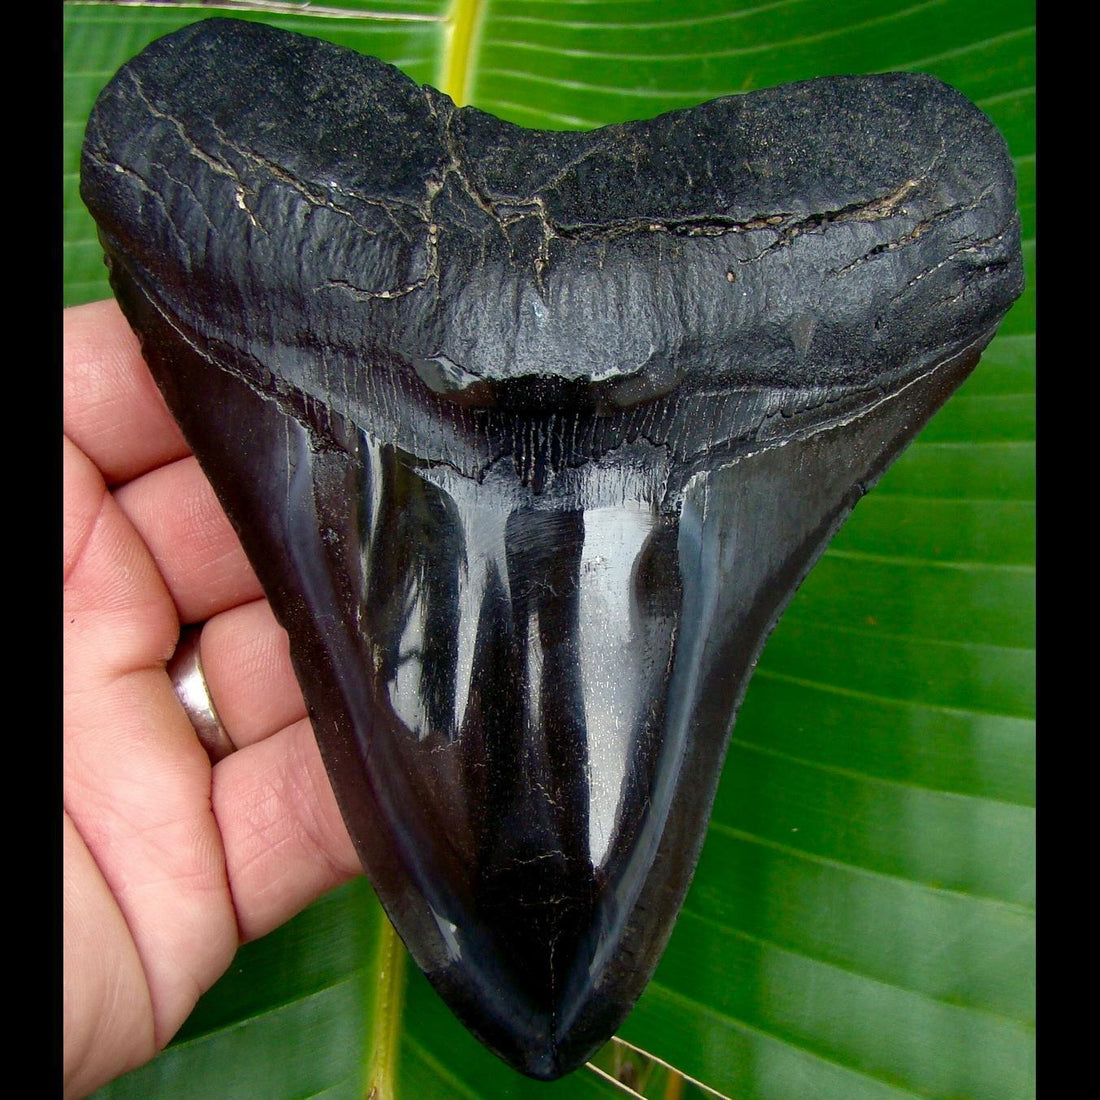 Megalodon Tooth 5 & 1/16 in. South Carolina Megalodon Shark Tooth